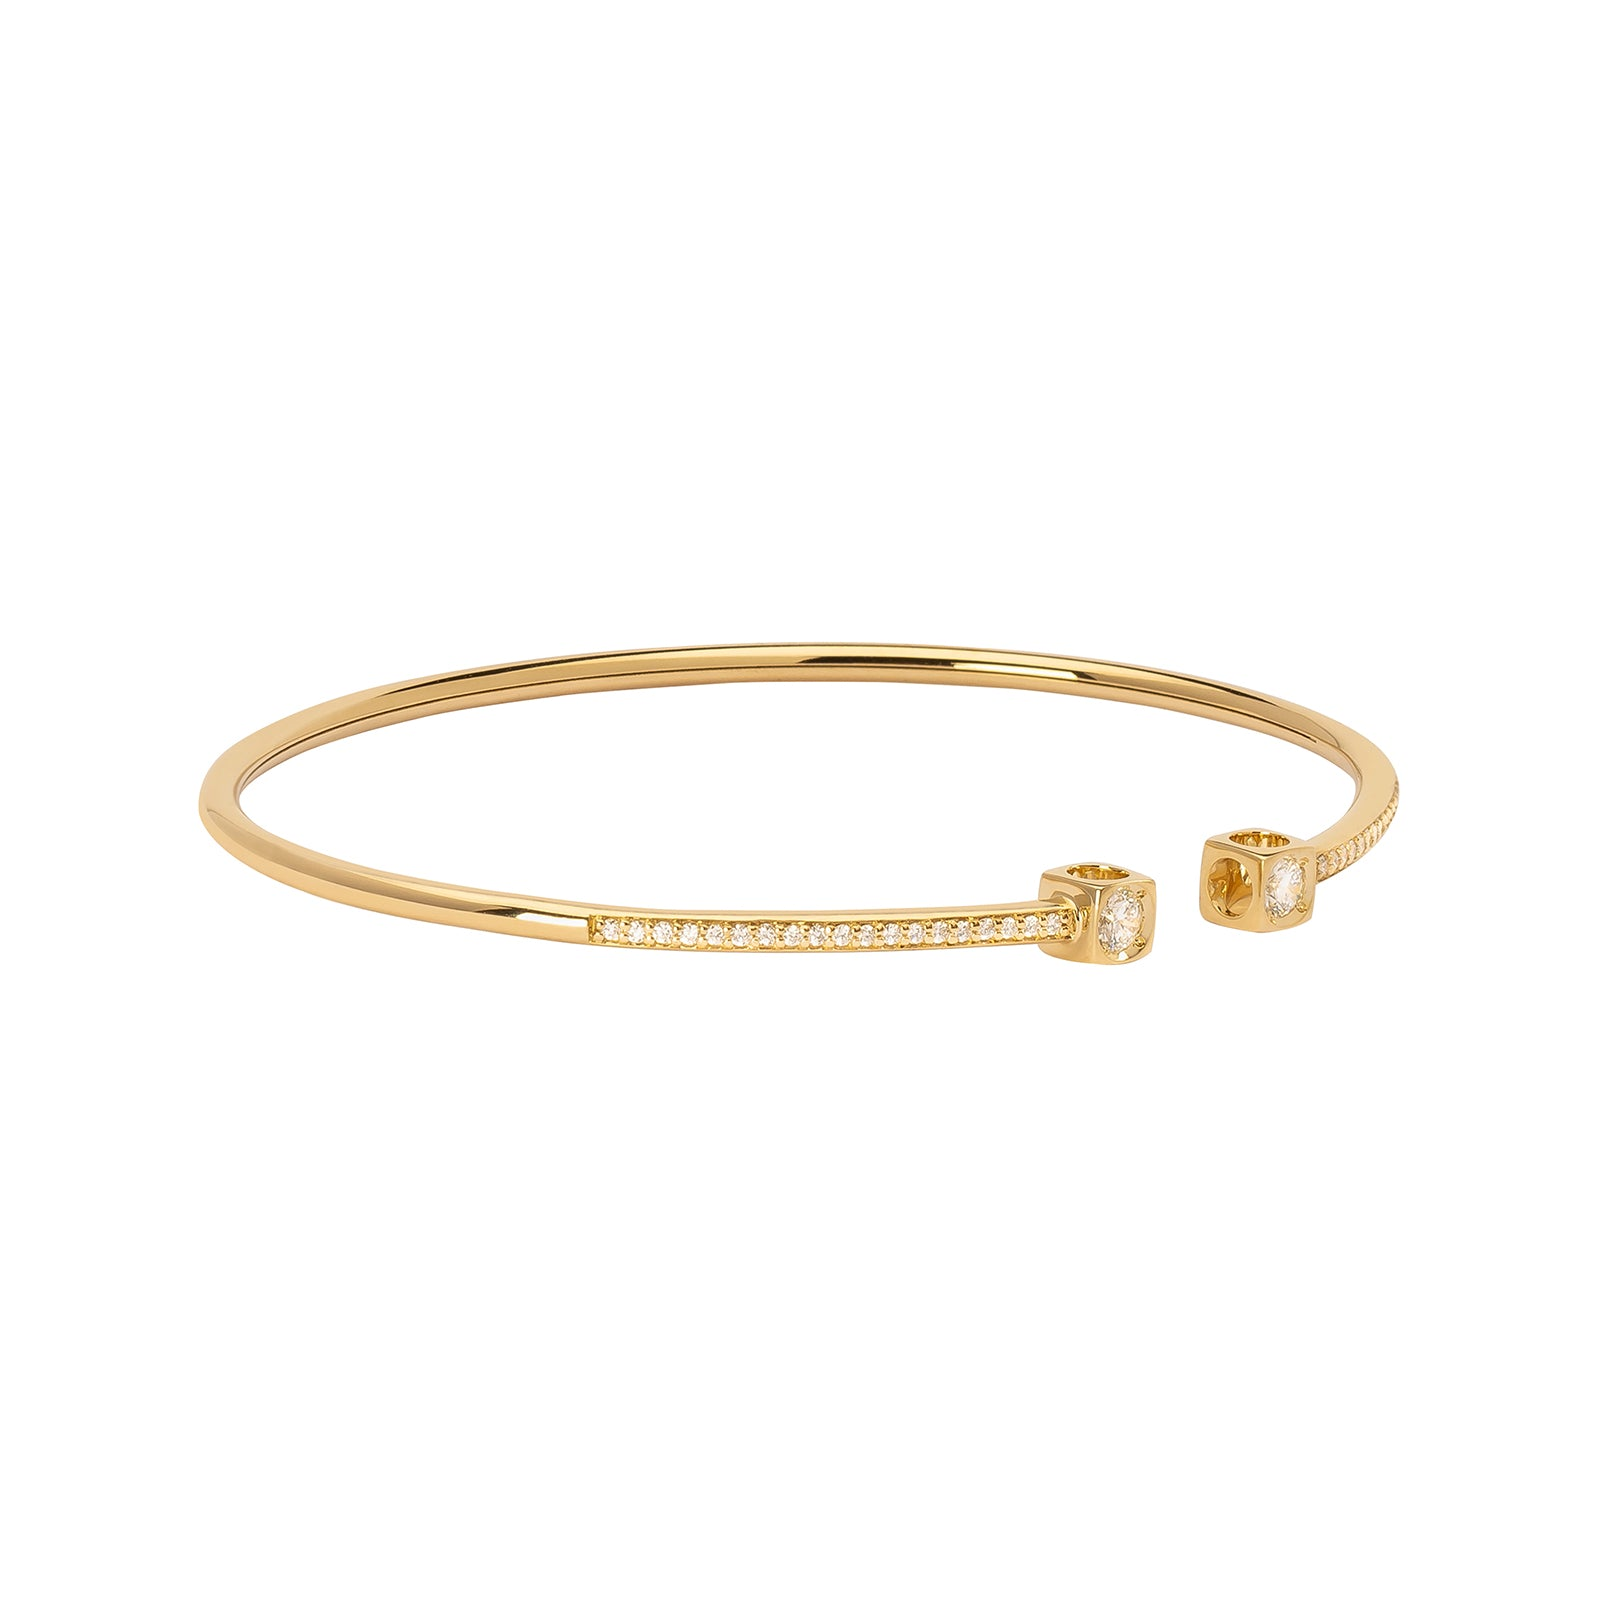 Dinh Van Le Cube Diamant Medium Bracelet - Yellow Gold - Bracelets - Broken English Jewelry